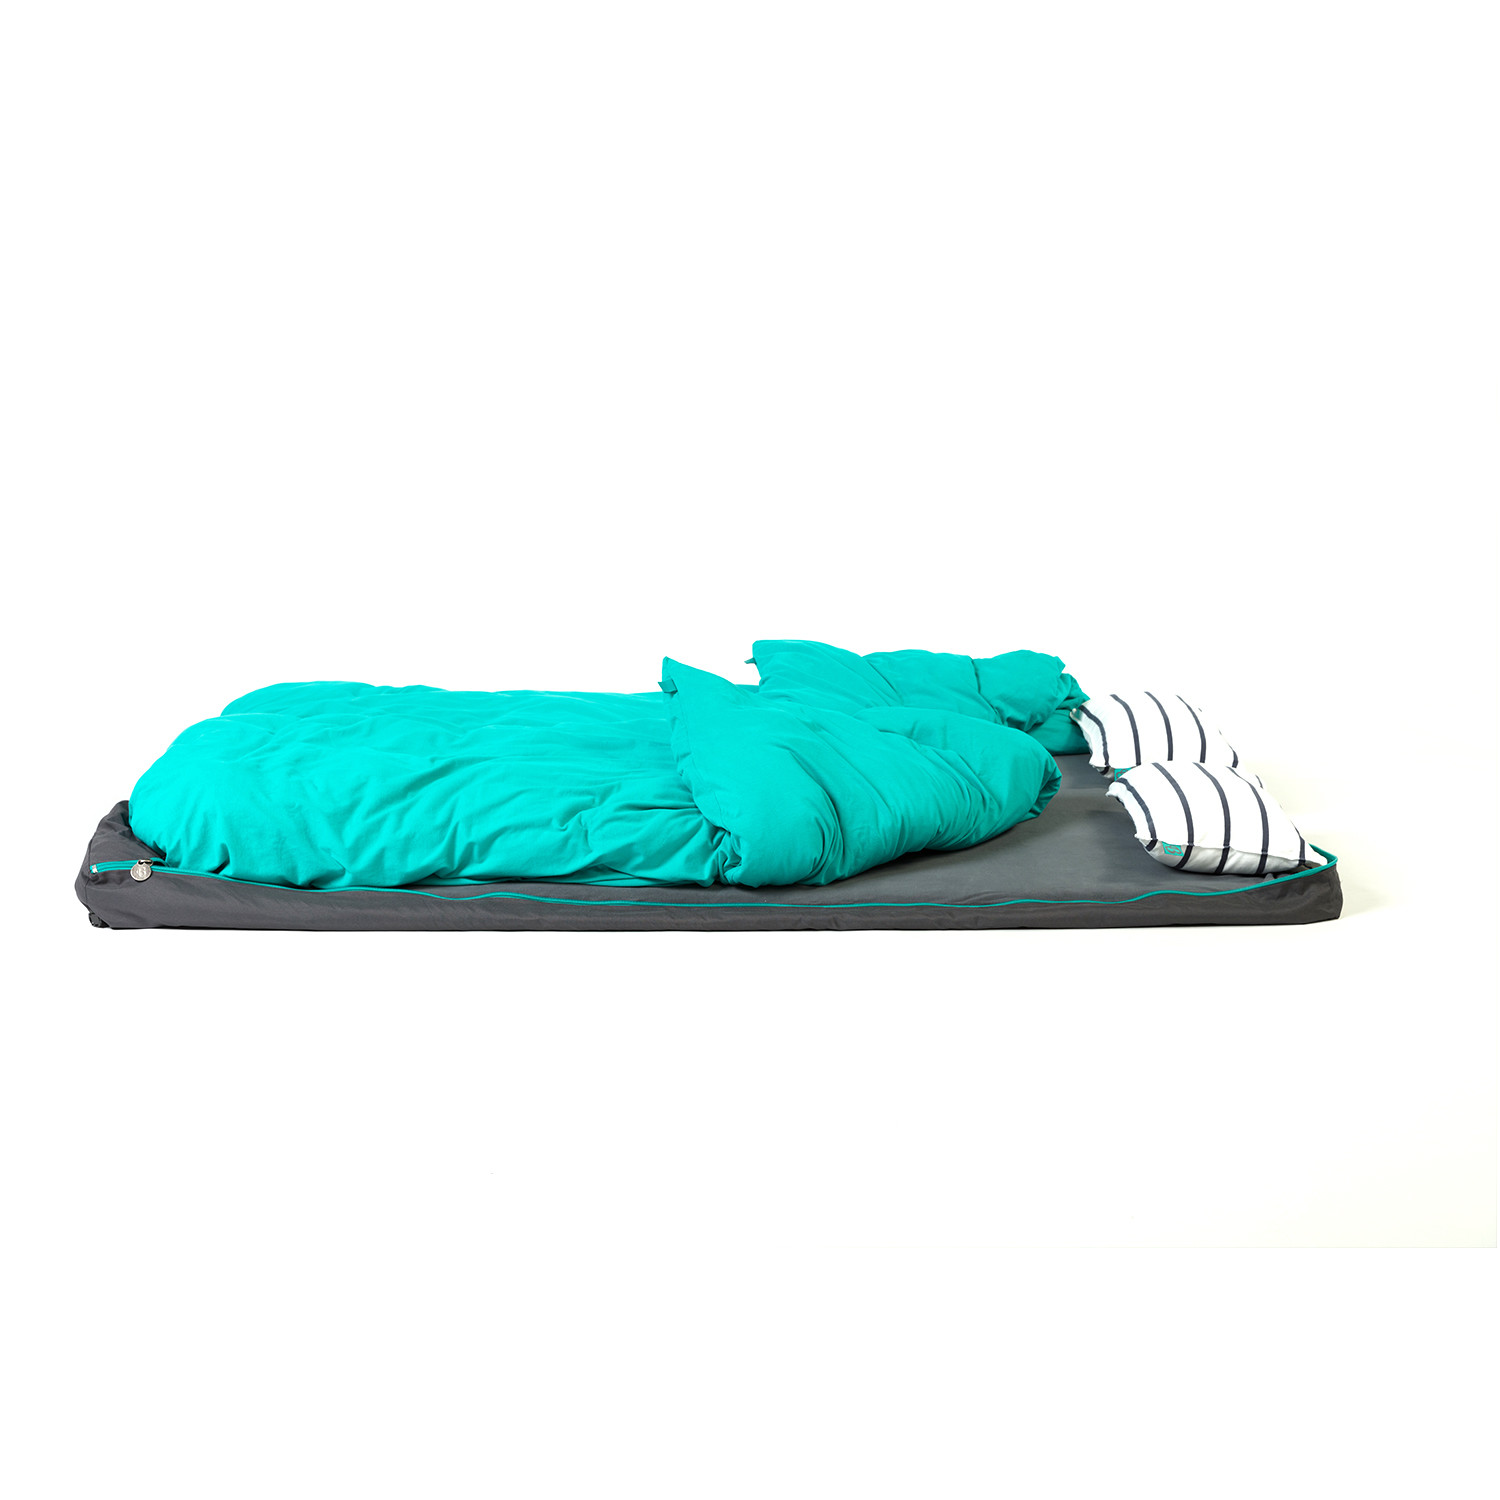 Bundle Bed Teal Bundle Beds Touch Of Modern